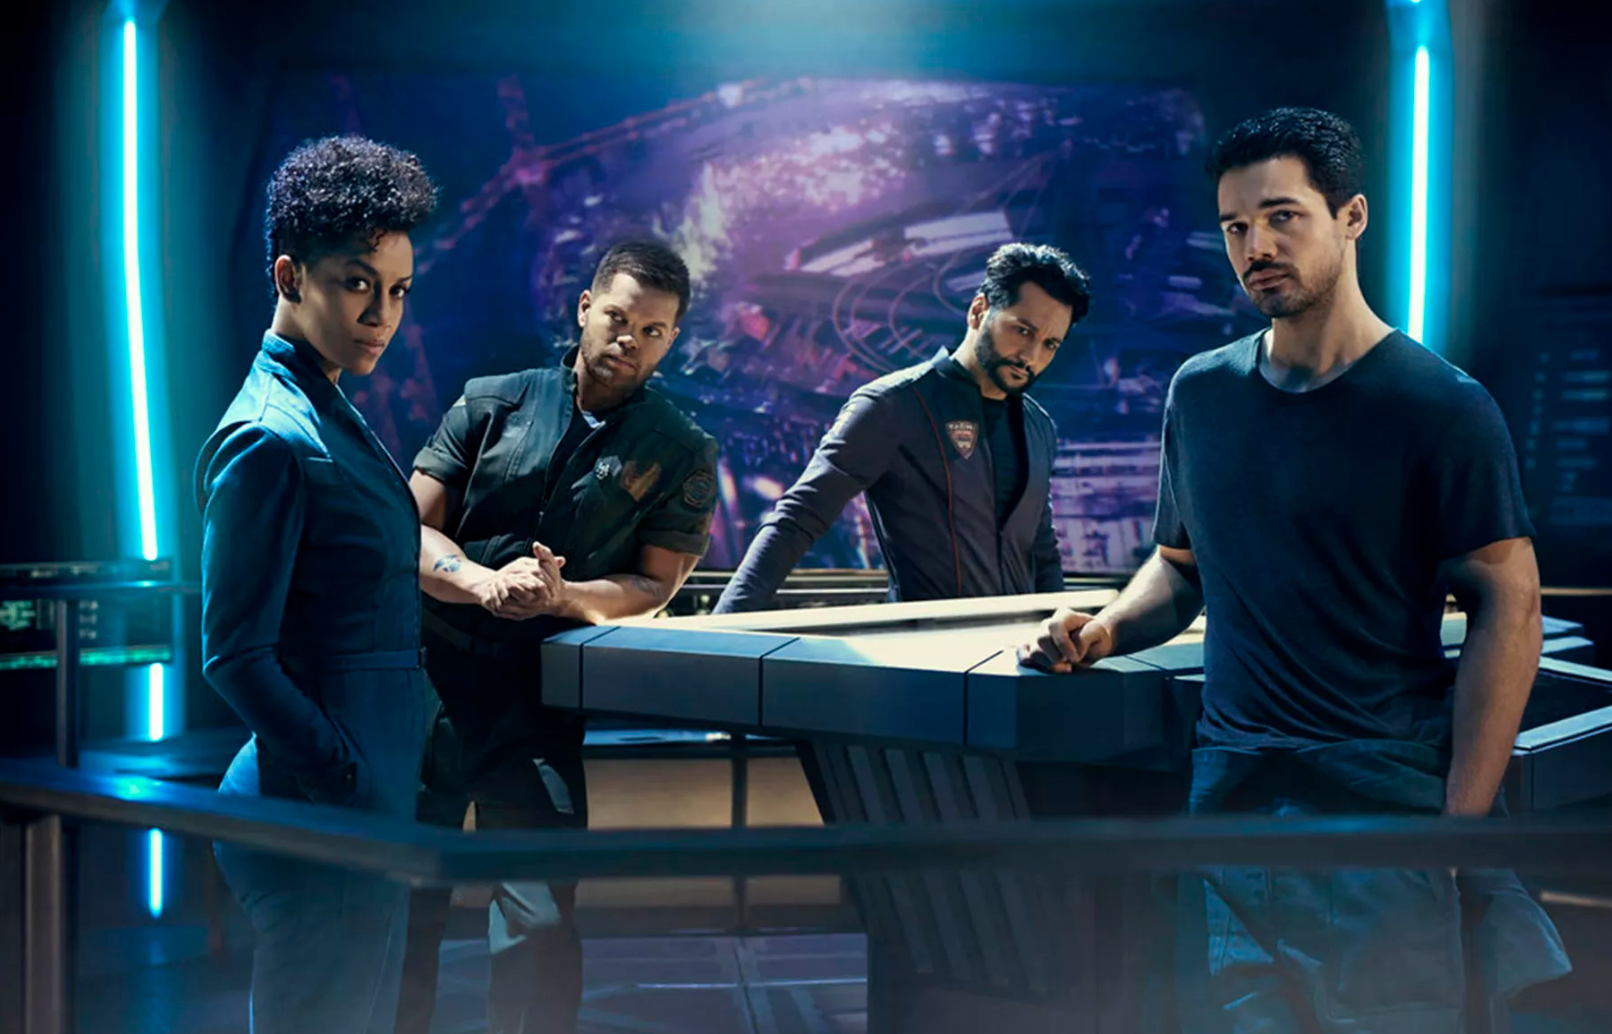 Jeff Bezos Announces The Expanse Is Moving to Amazon